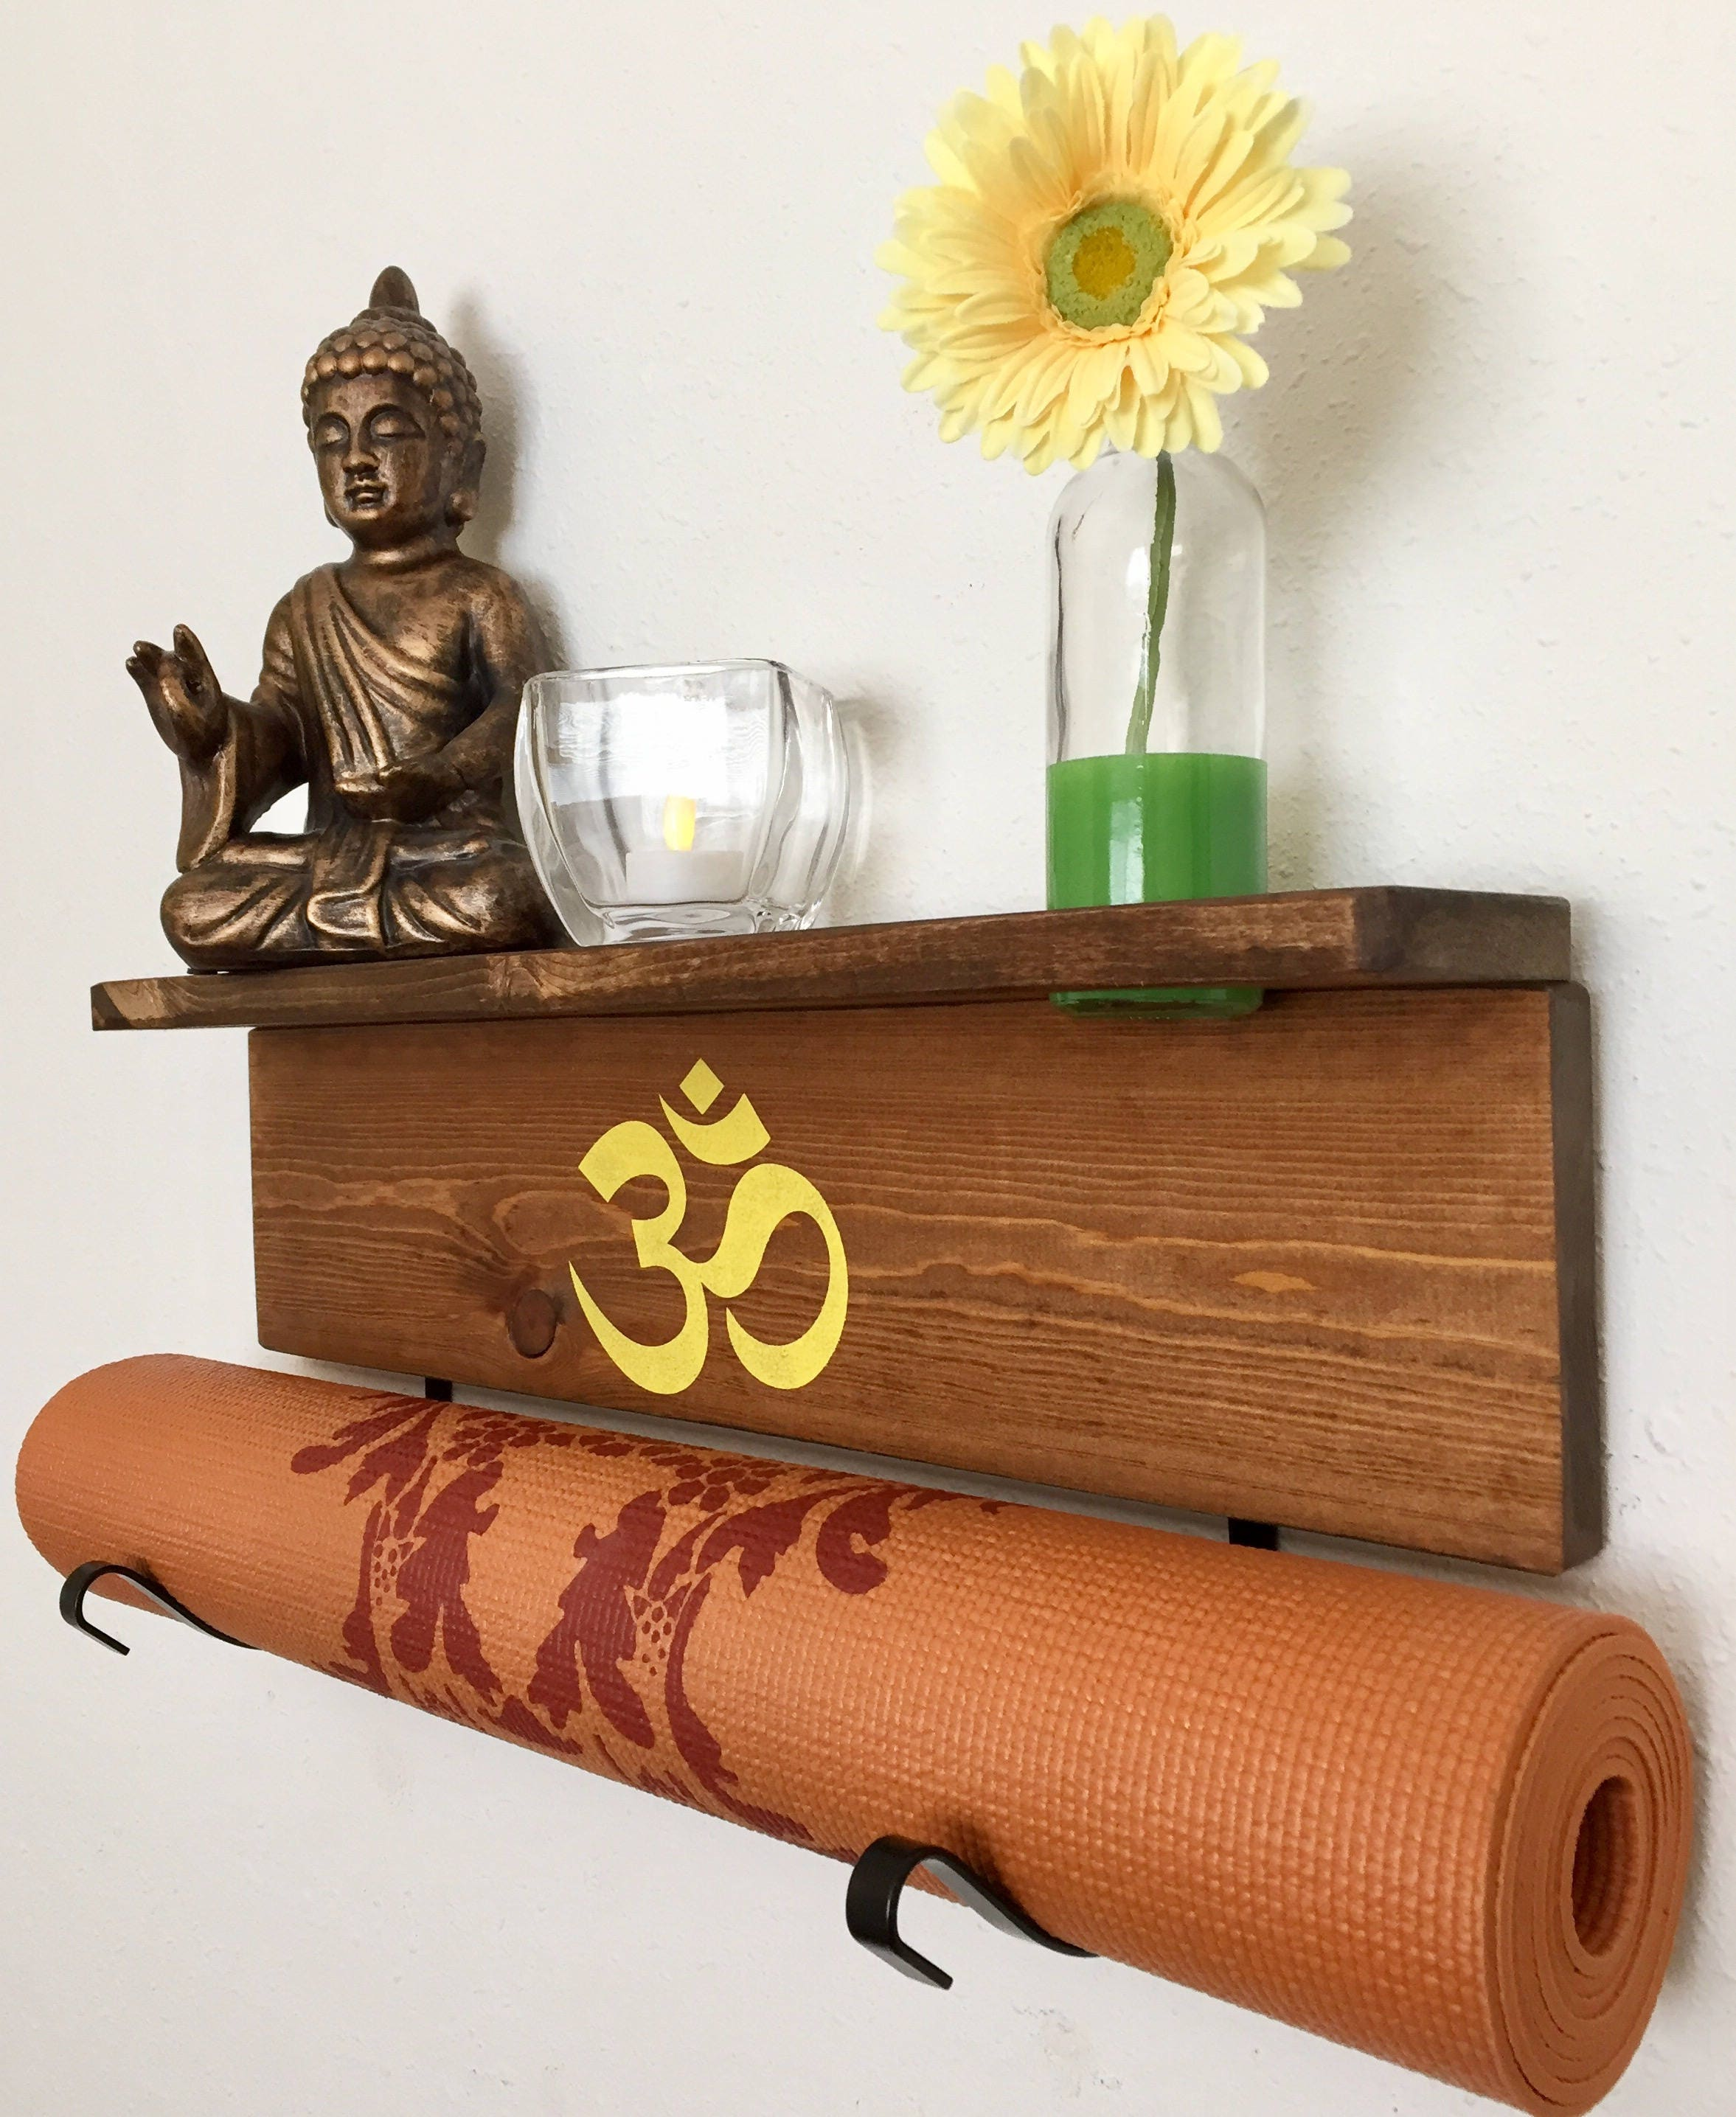 home ashtanga my one room studio i the need mat yoga do shala mats begin storage at and articles balance